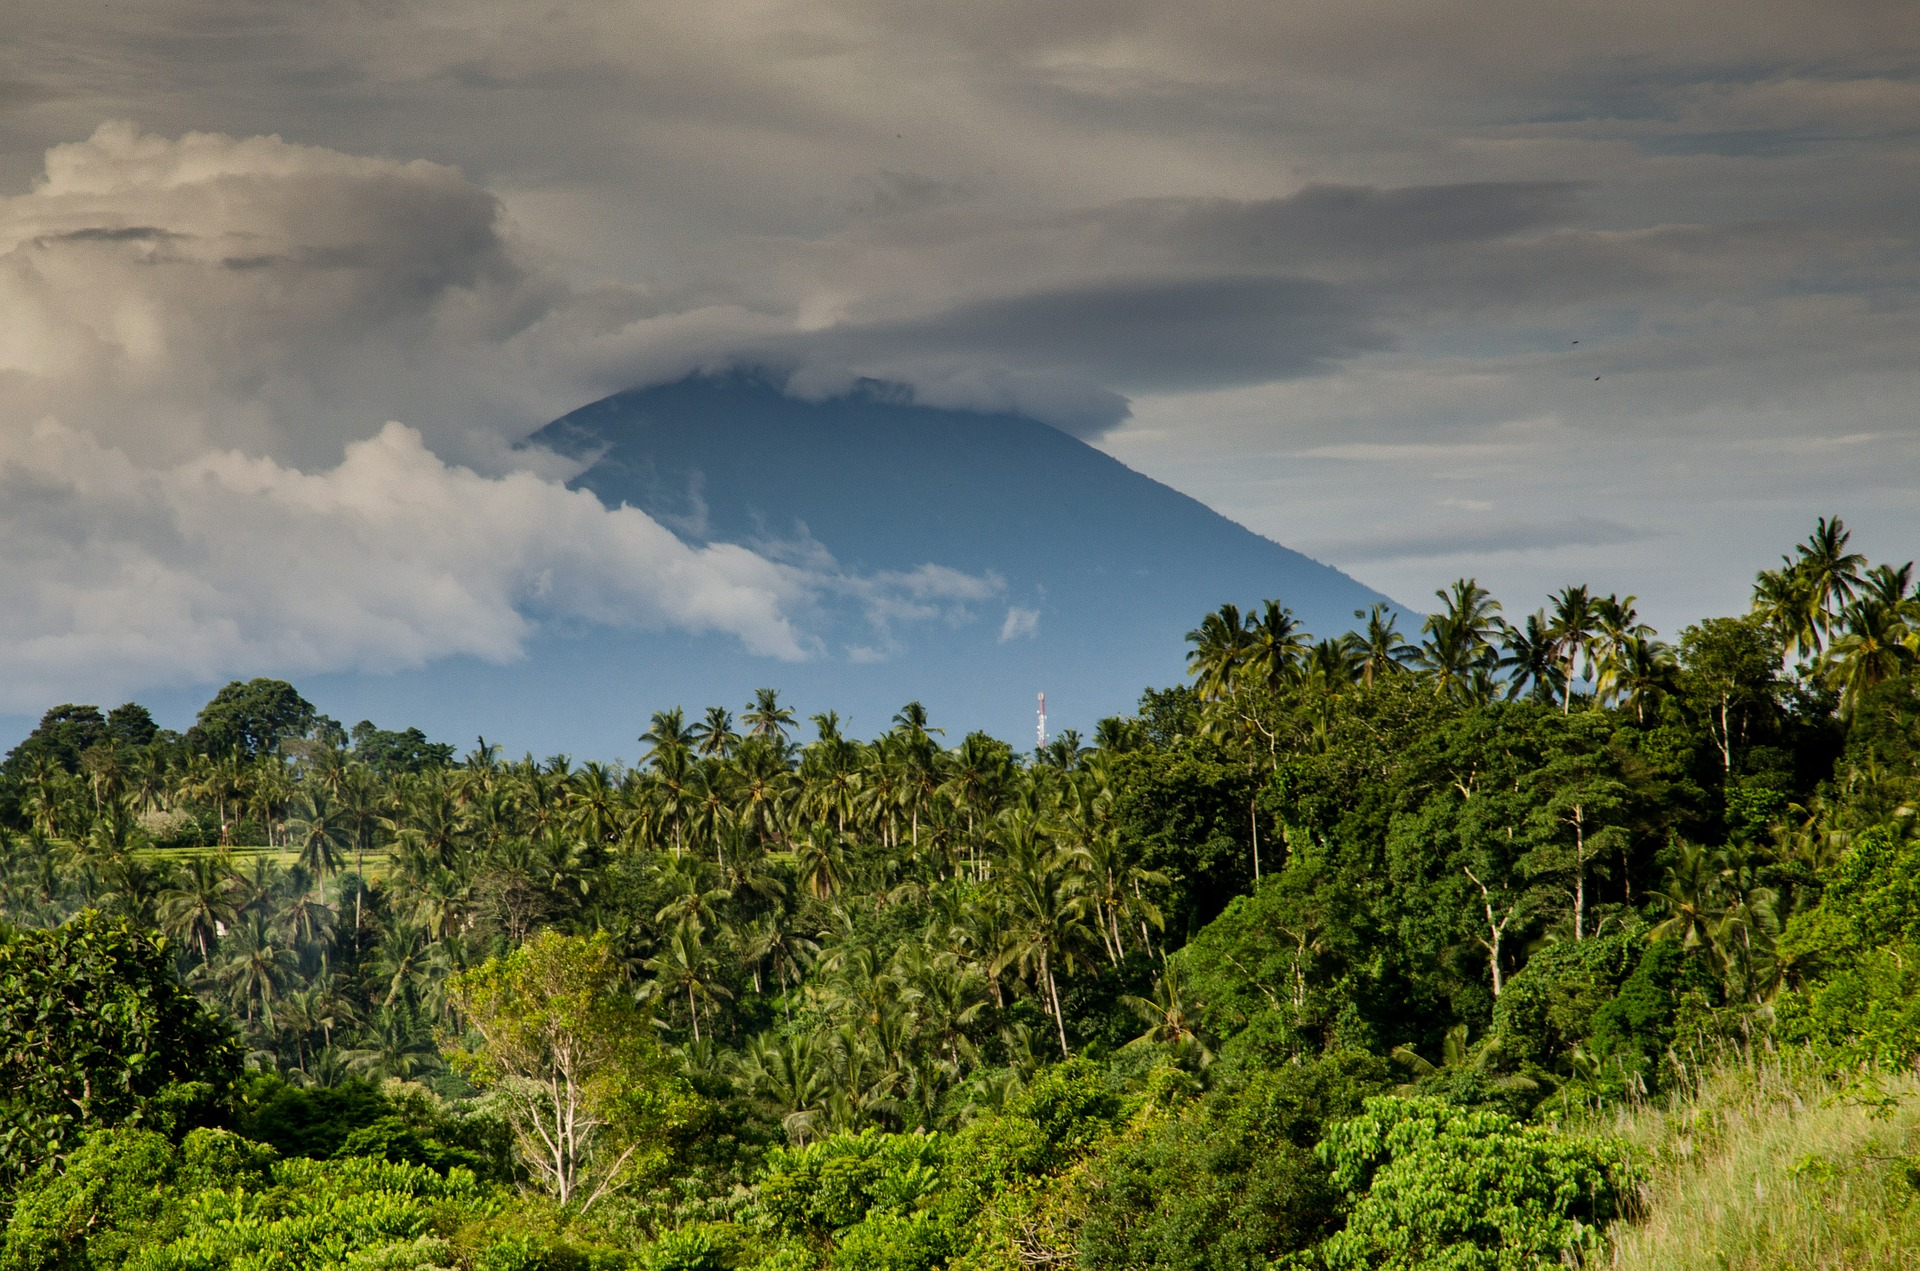 Volcano covered with Clouds, Cloudy, Forest, Jungle, Landscape, HQ Photo